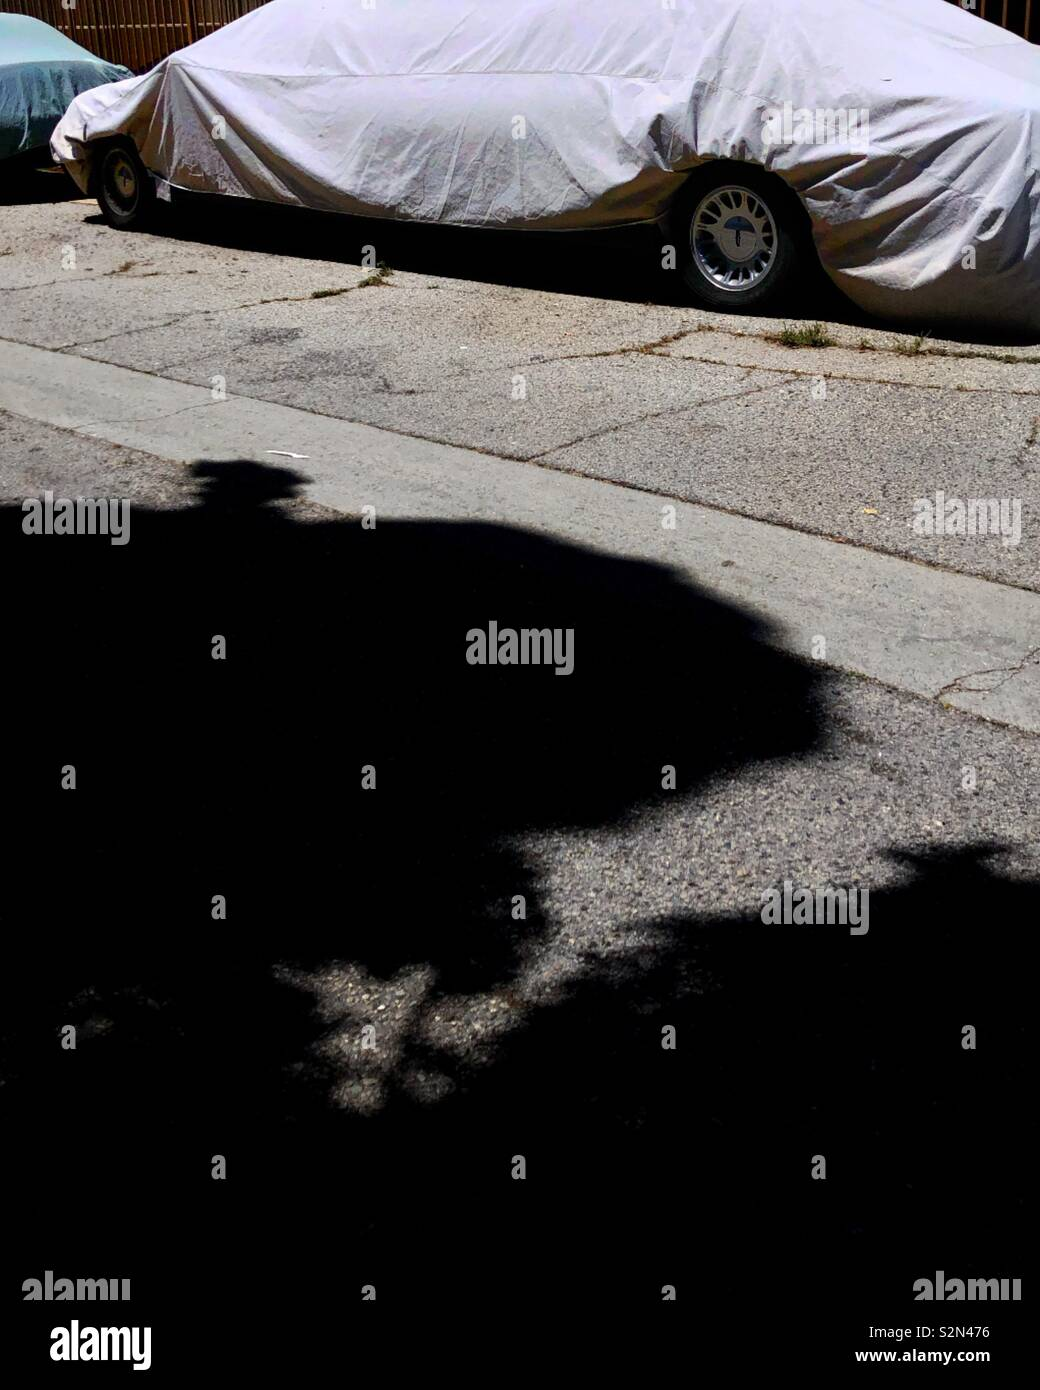 Tarp covers a large limo parked in an alley Stock Photo